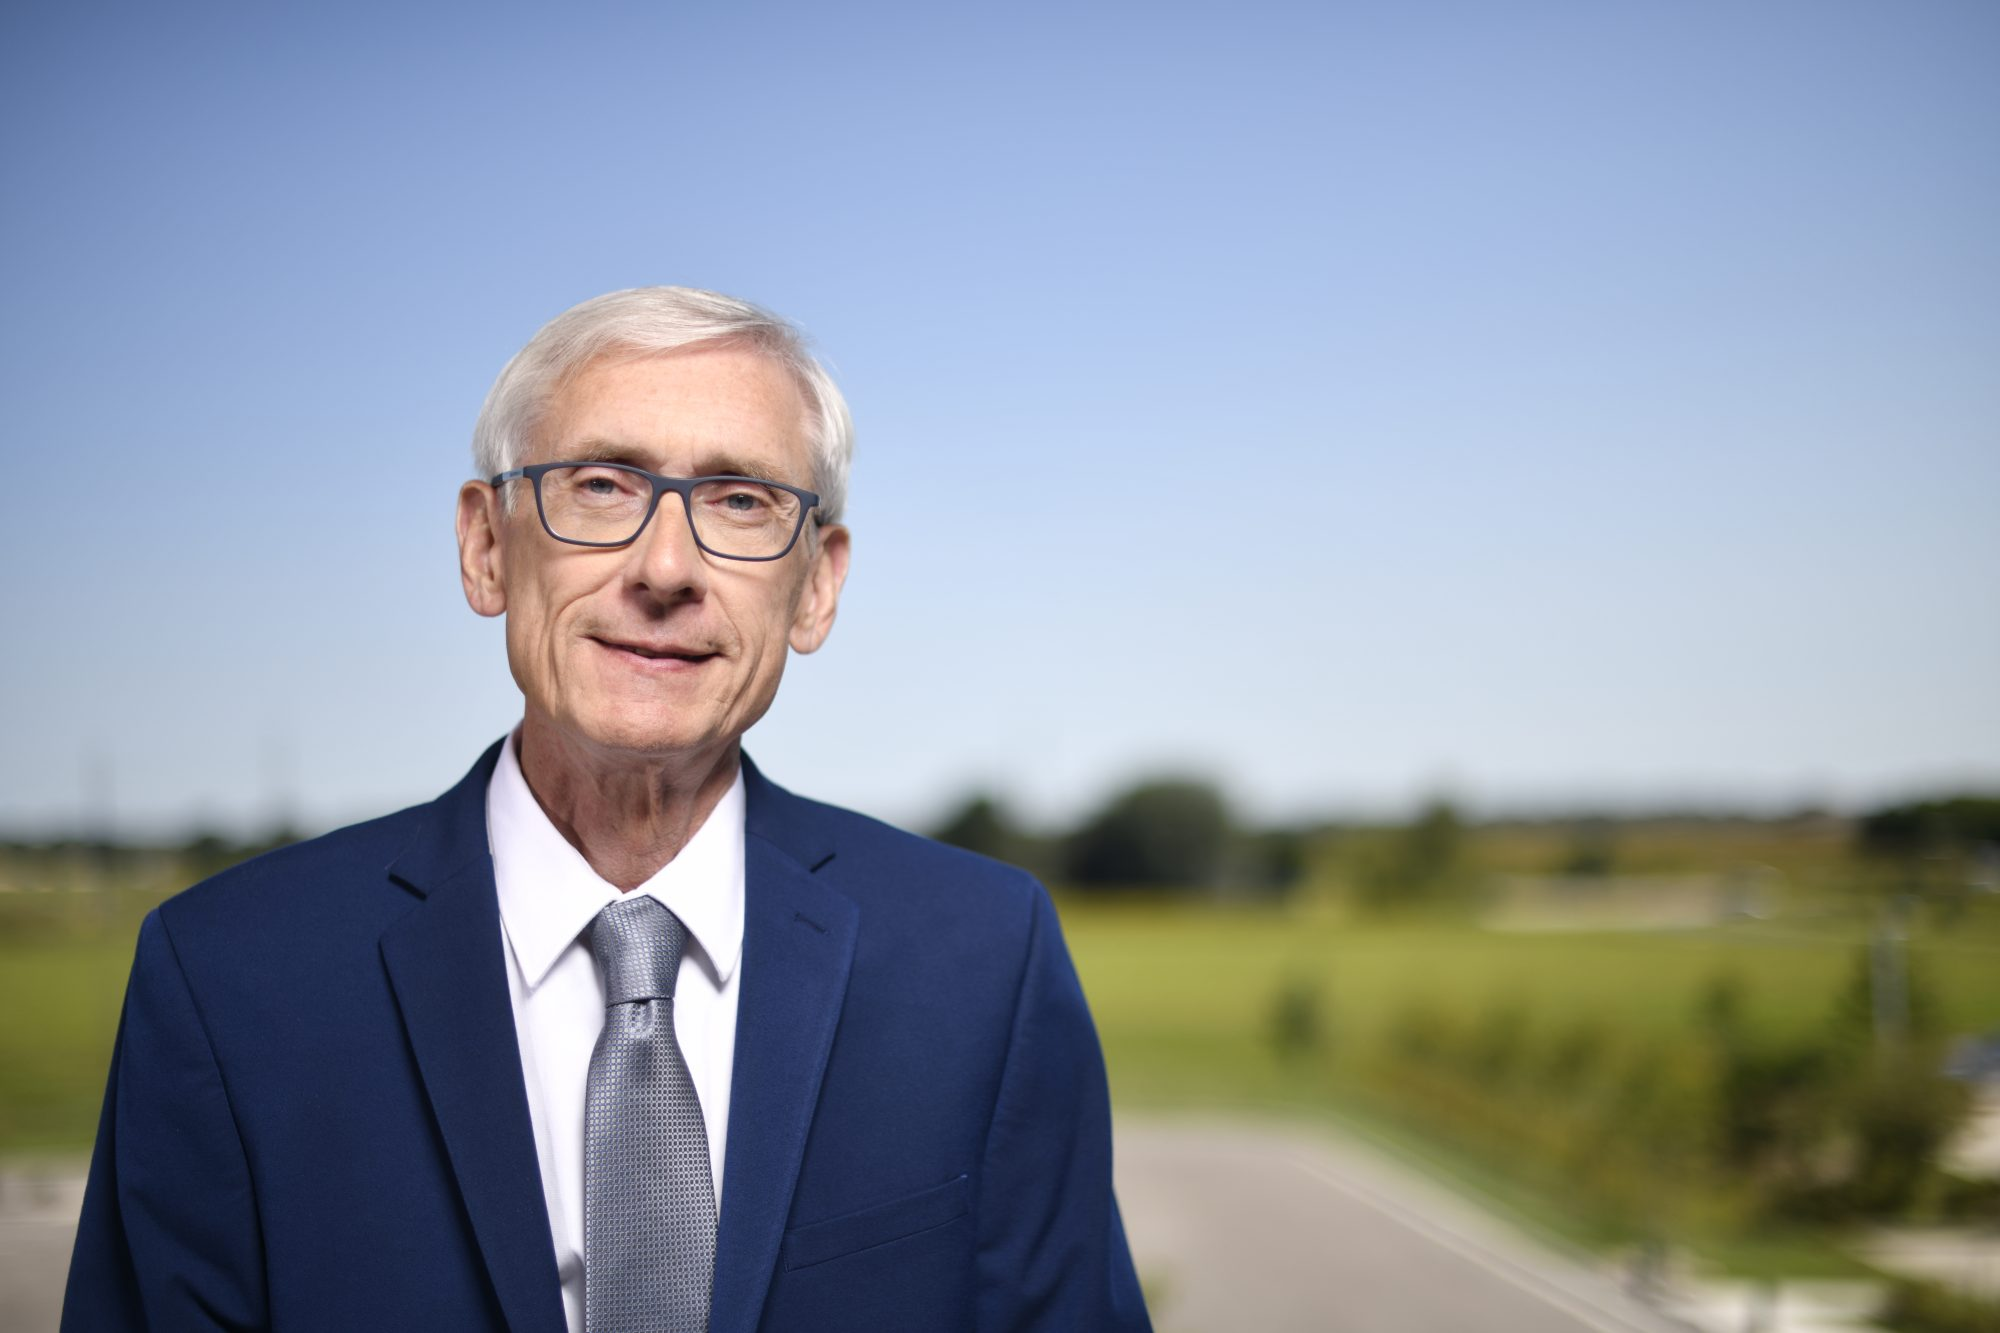 Gov. Evers Visits Wisconsin's Sister State in Japan, Meets with Educators and Local Leaders